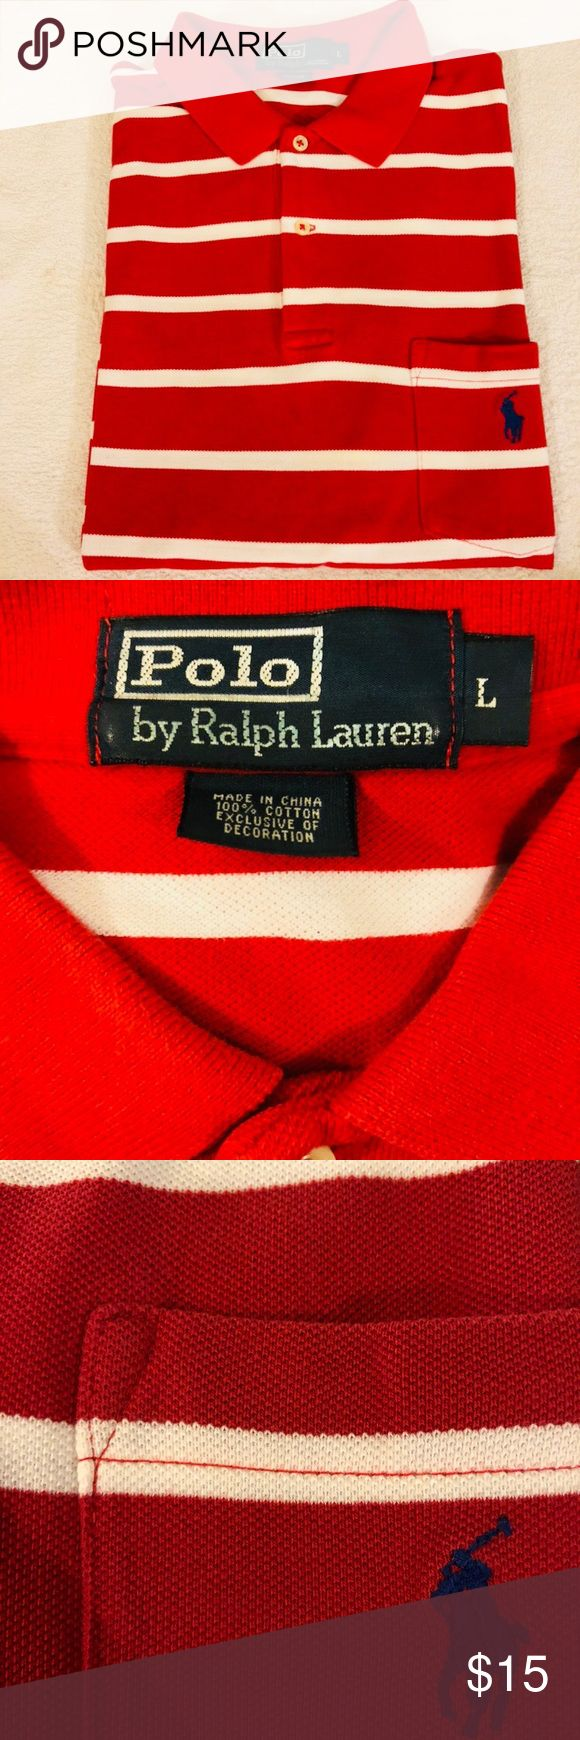 Polo Ralph Lauren Red & White Stripe Polo Shirt L Polo Ralph Lauren Red and White Stripe Short Sleeve Polo Shirt size L! Like new! Please make reasonable offers and bundle! Ask questions! :) Polo by Ralph Lauren Shirts Polos